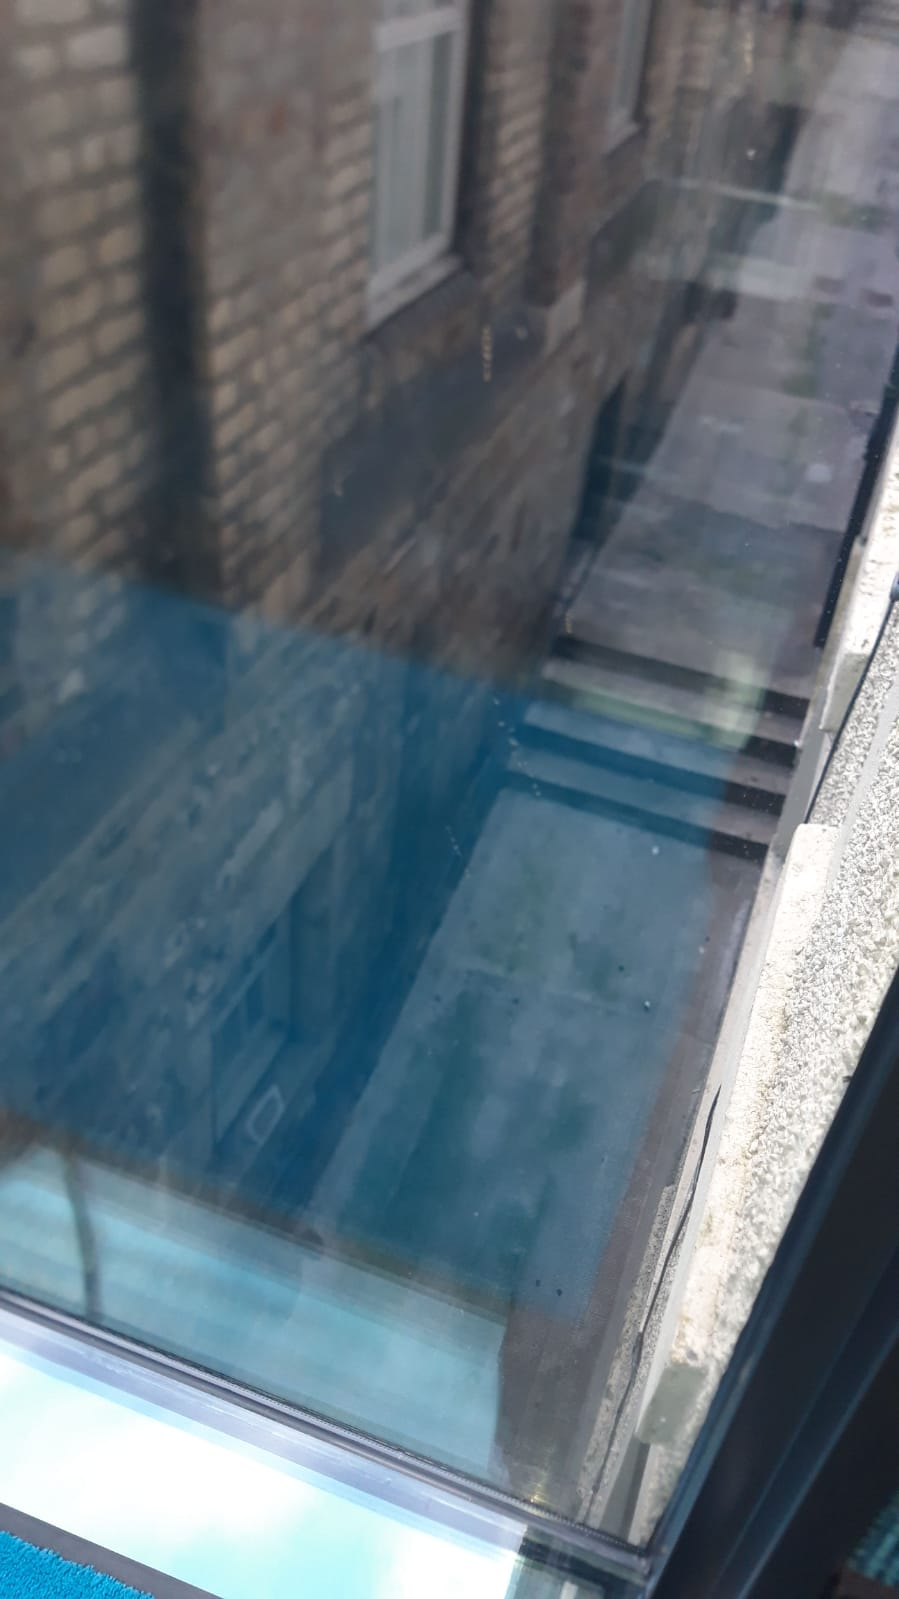 Looking down on some stairs through glass